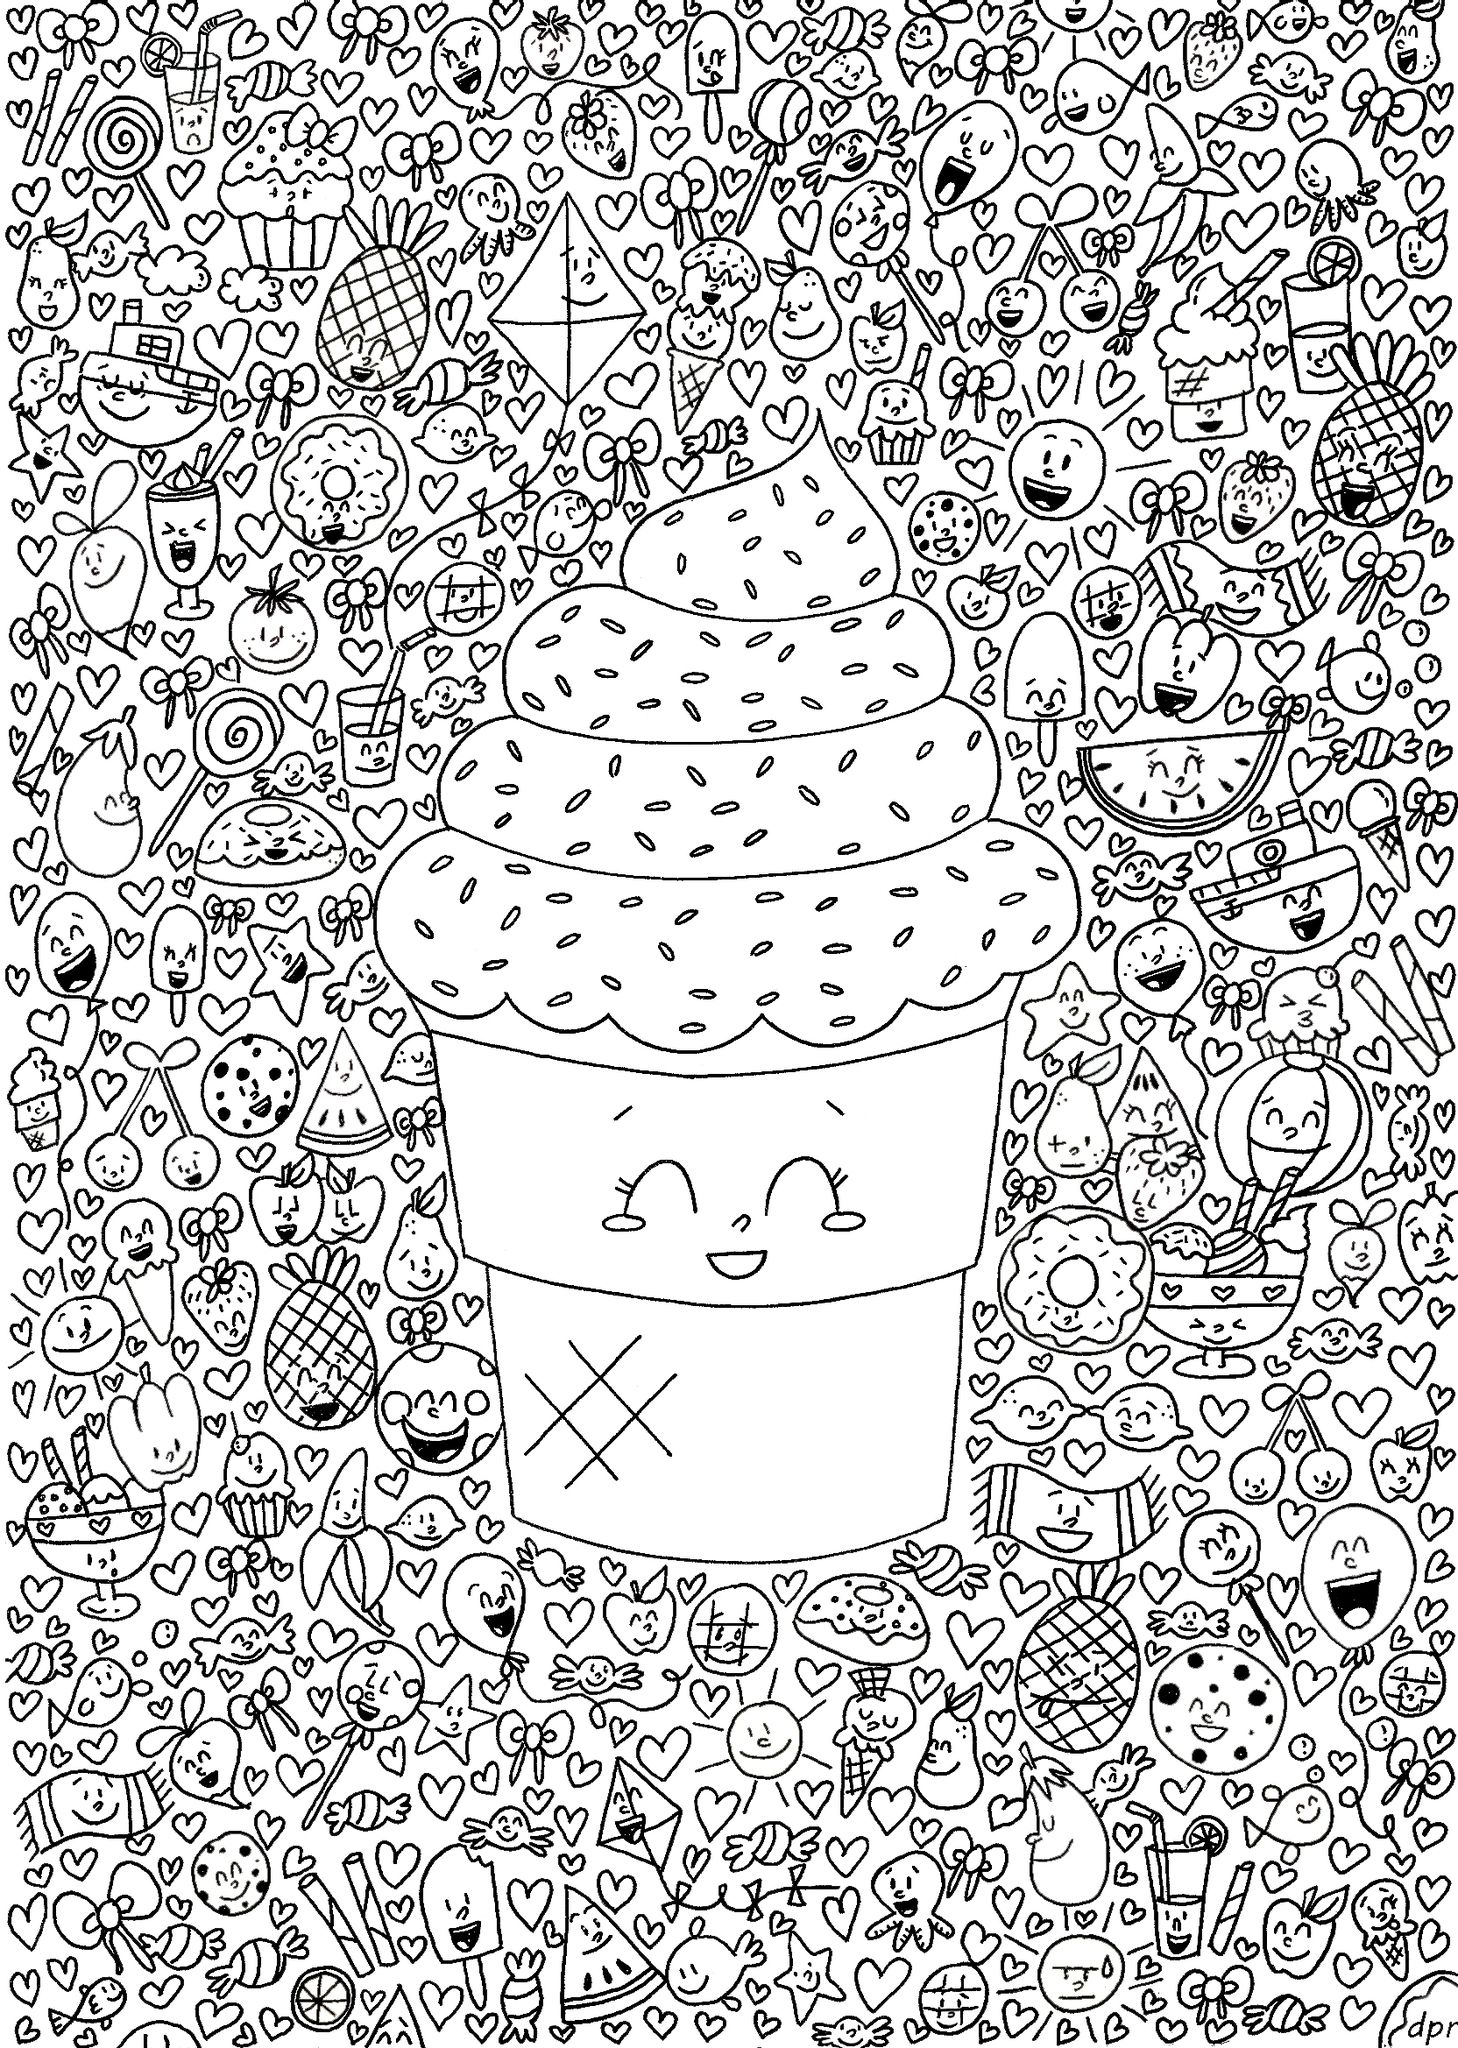 Coloriage Art Therapie Kawaii Coloriage A Imprimer Pinterest